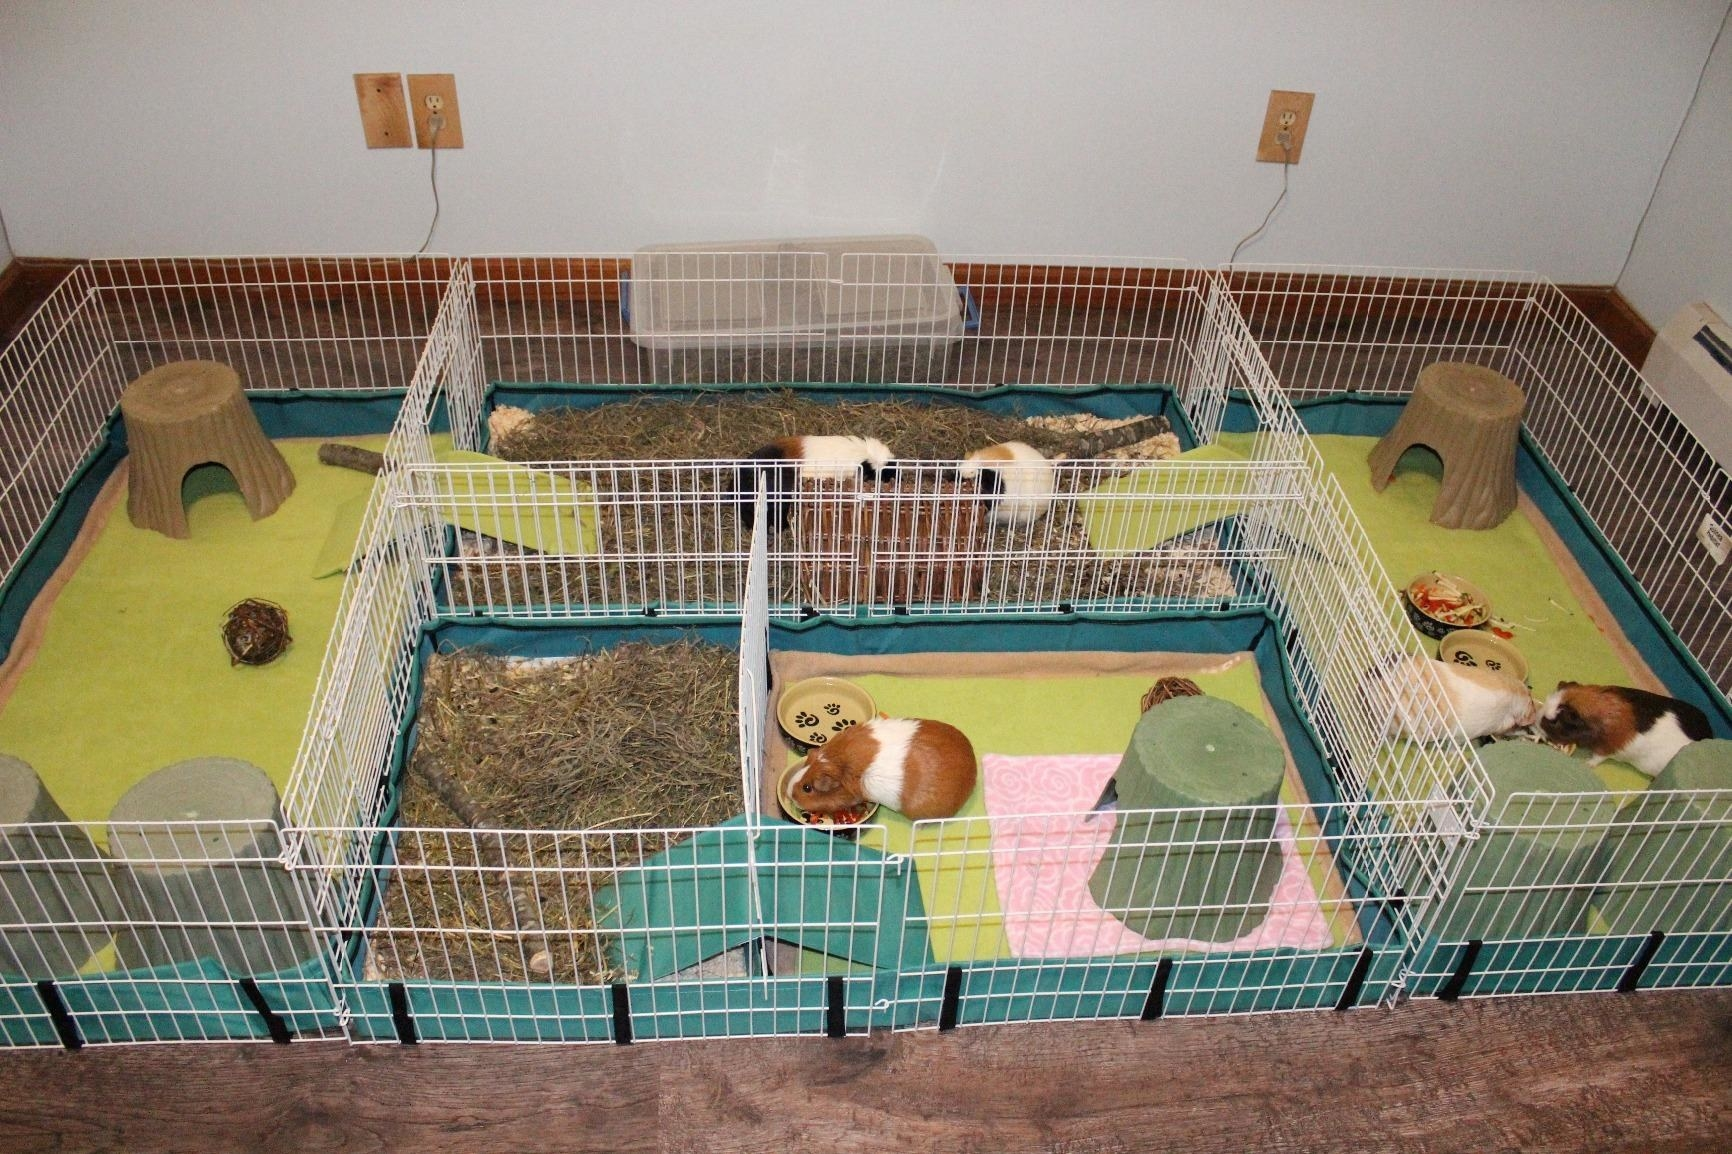 The habitat, which has wire mesh walls, a ramp, and dividers